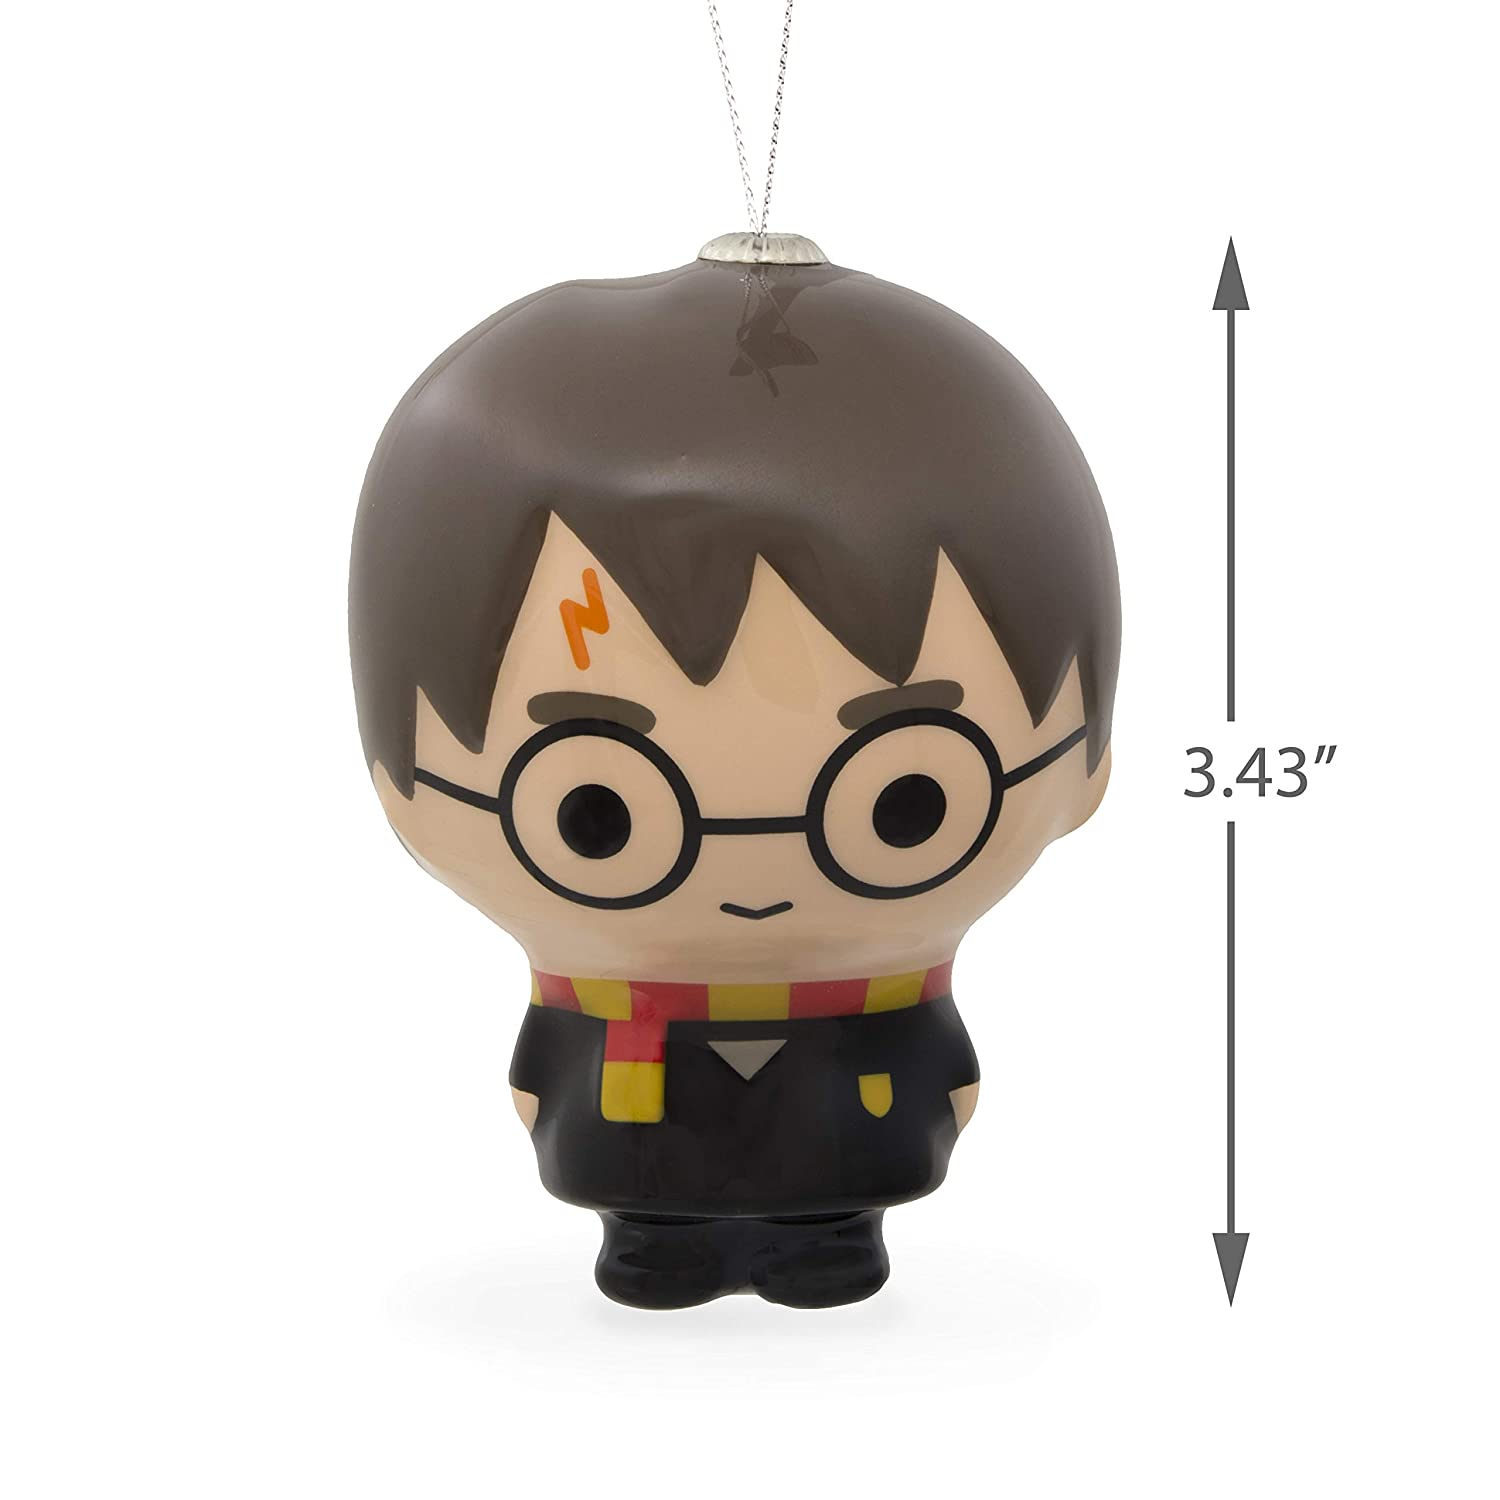 Hallmark Christmas Ornaments, Harry Potter Decoupage Ornament